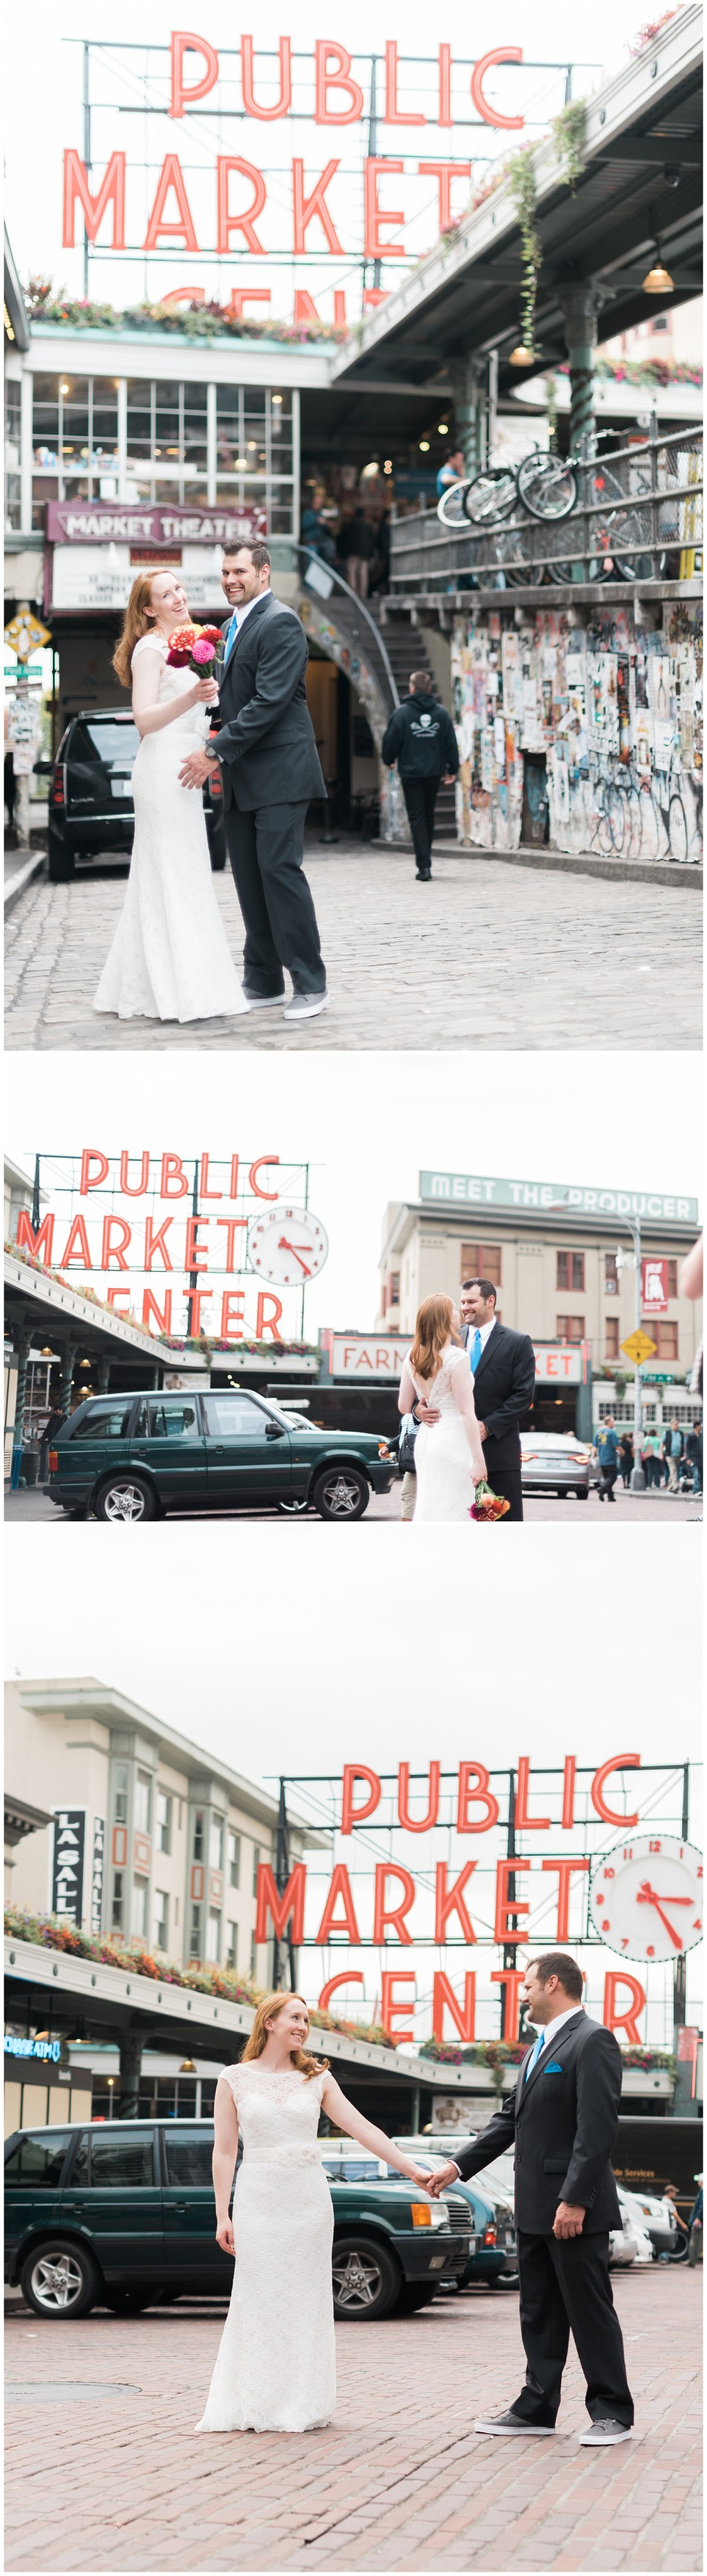 Seattle Destination Wedding Photographer, Seattle Elopement, Jenny Storment, Inn at the Market, Seattle Water Front, Pikes Market, Sculpture Park, Seattle, Seattle Ferry, Wedding Photographer, Seattle Roof Views, Pikes Market, Pikes Market Flowers,